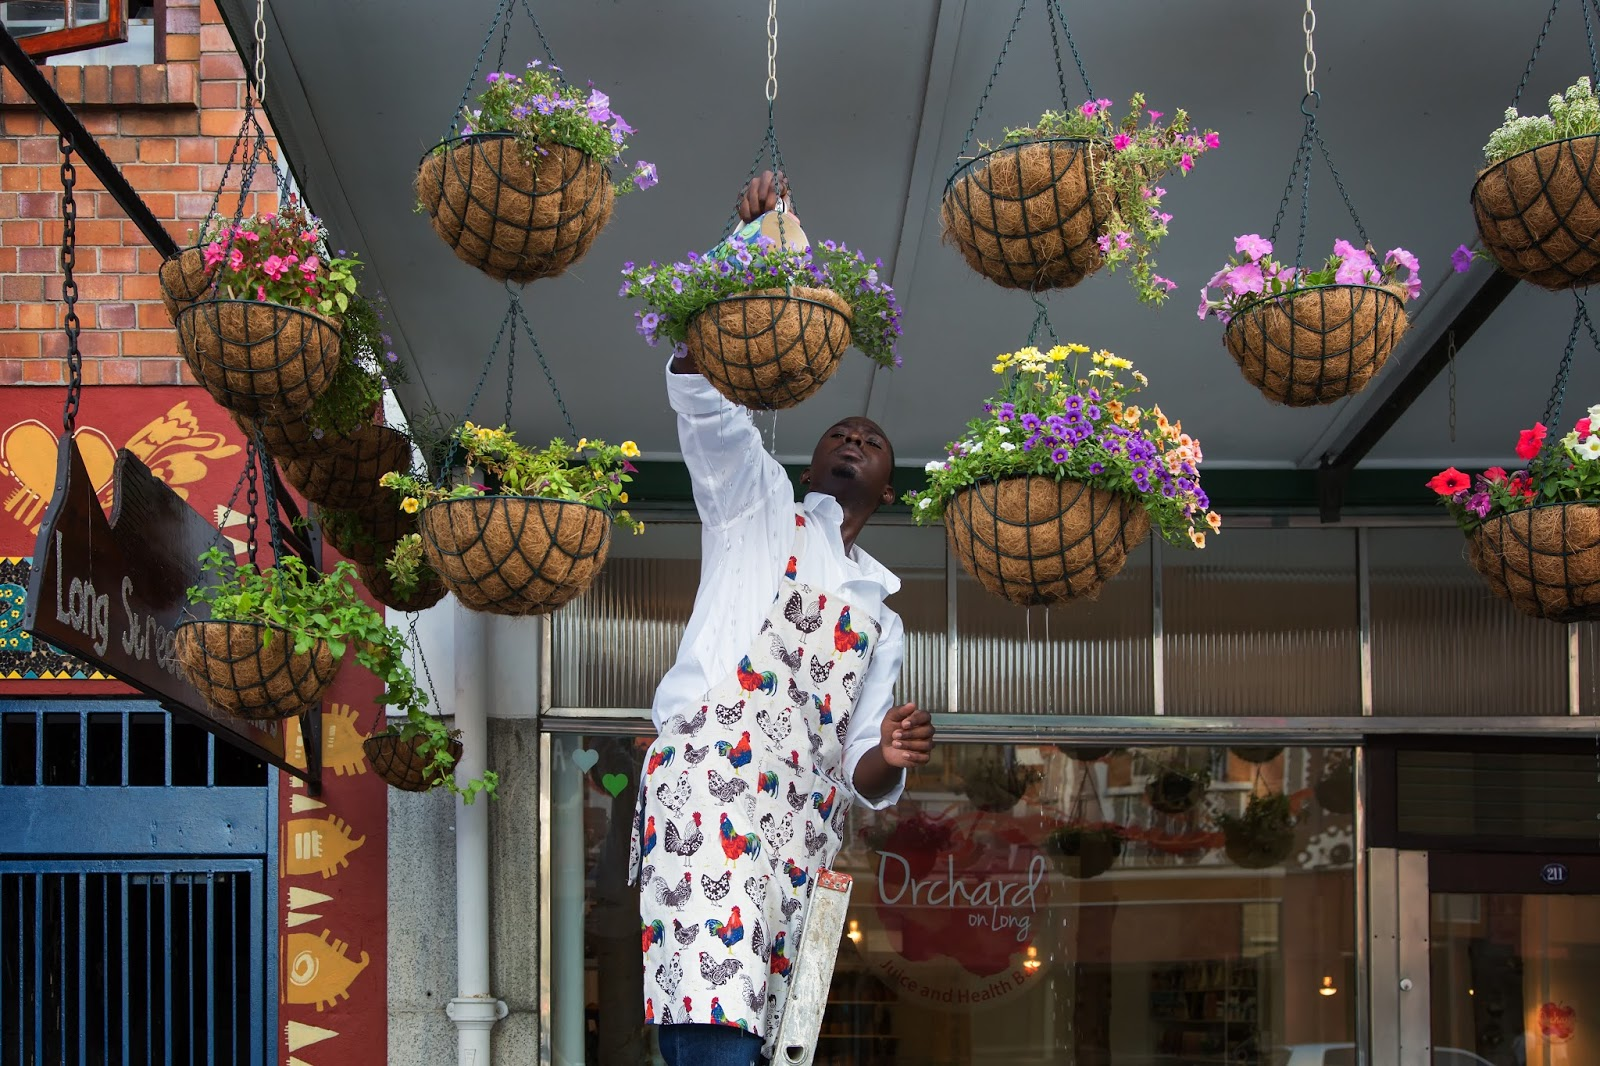 A street photograph of a man watering some hanging flower baskets.